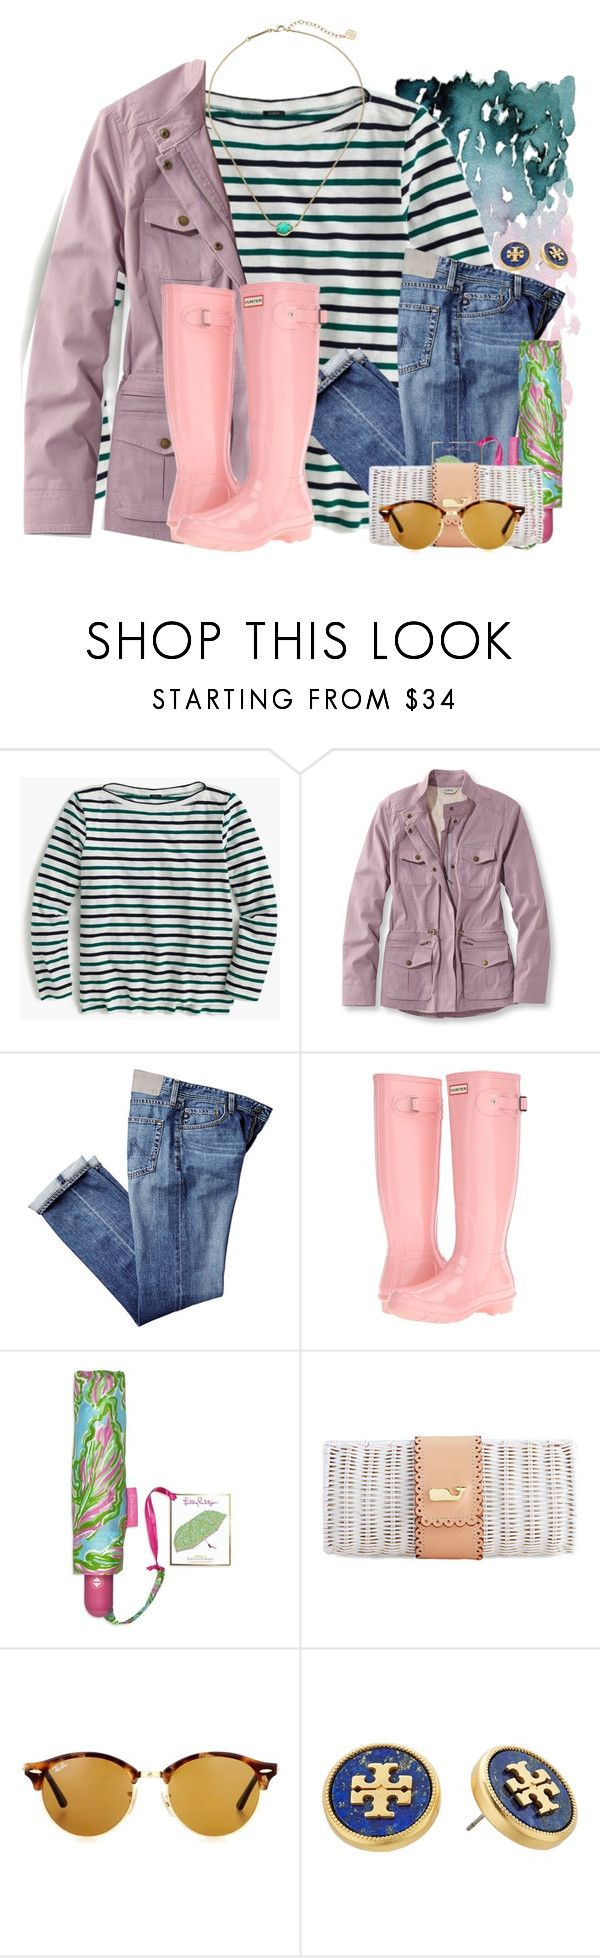 """It has been raining here every day this week"" by flroasburn ❤ liked on Polyvore featuring J.Crew, L.L.Bean, Hunter, Lilly Pulitzer, Ray-Ban, Tory Burch, Kendra Scott and plus size clothing"